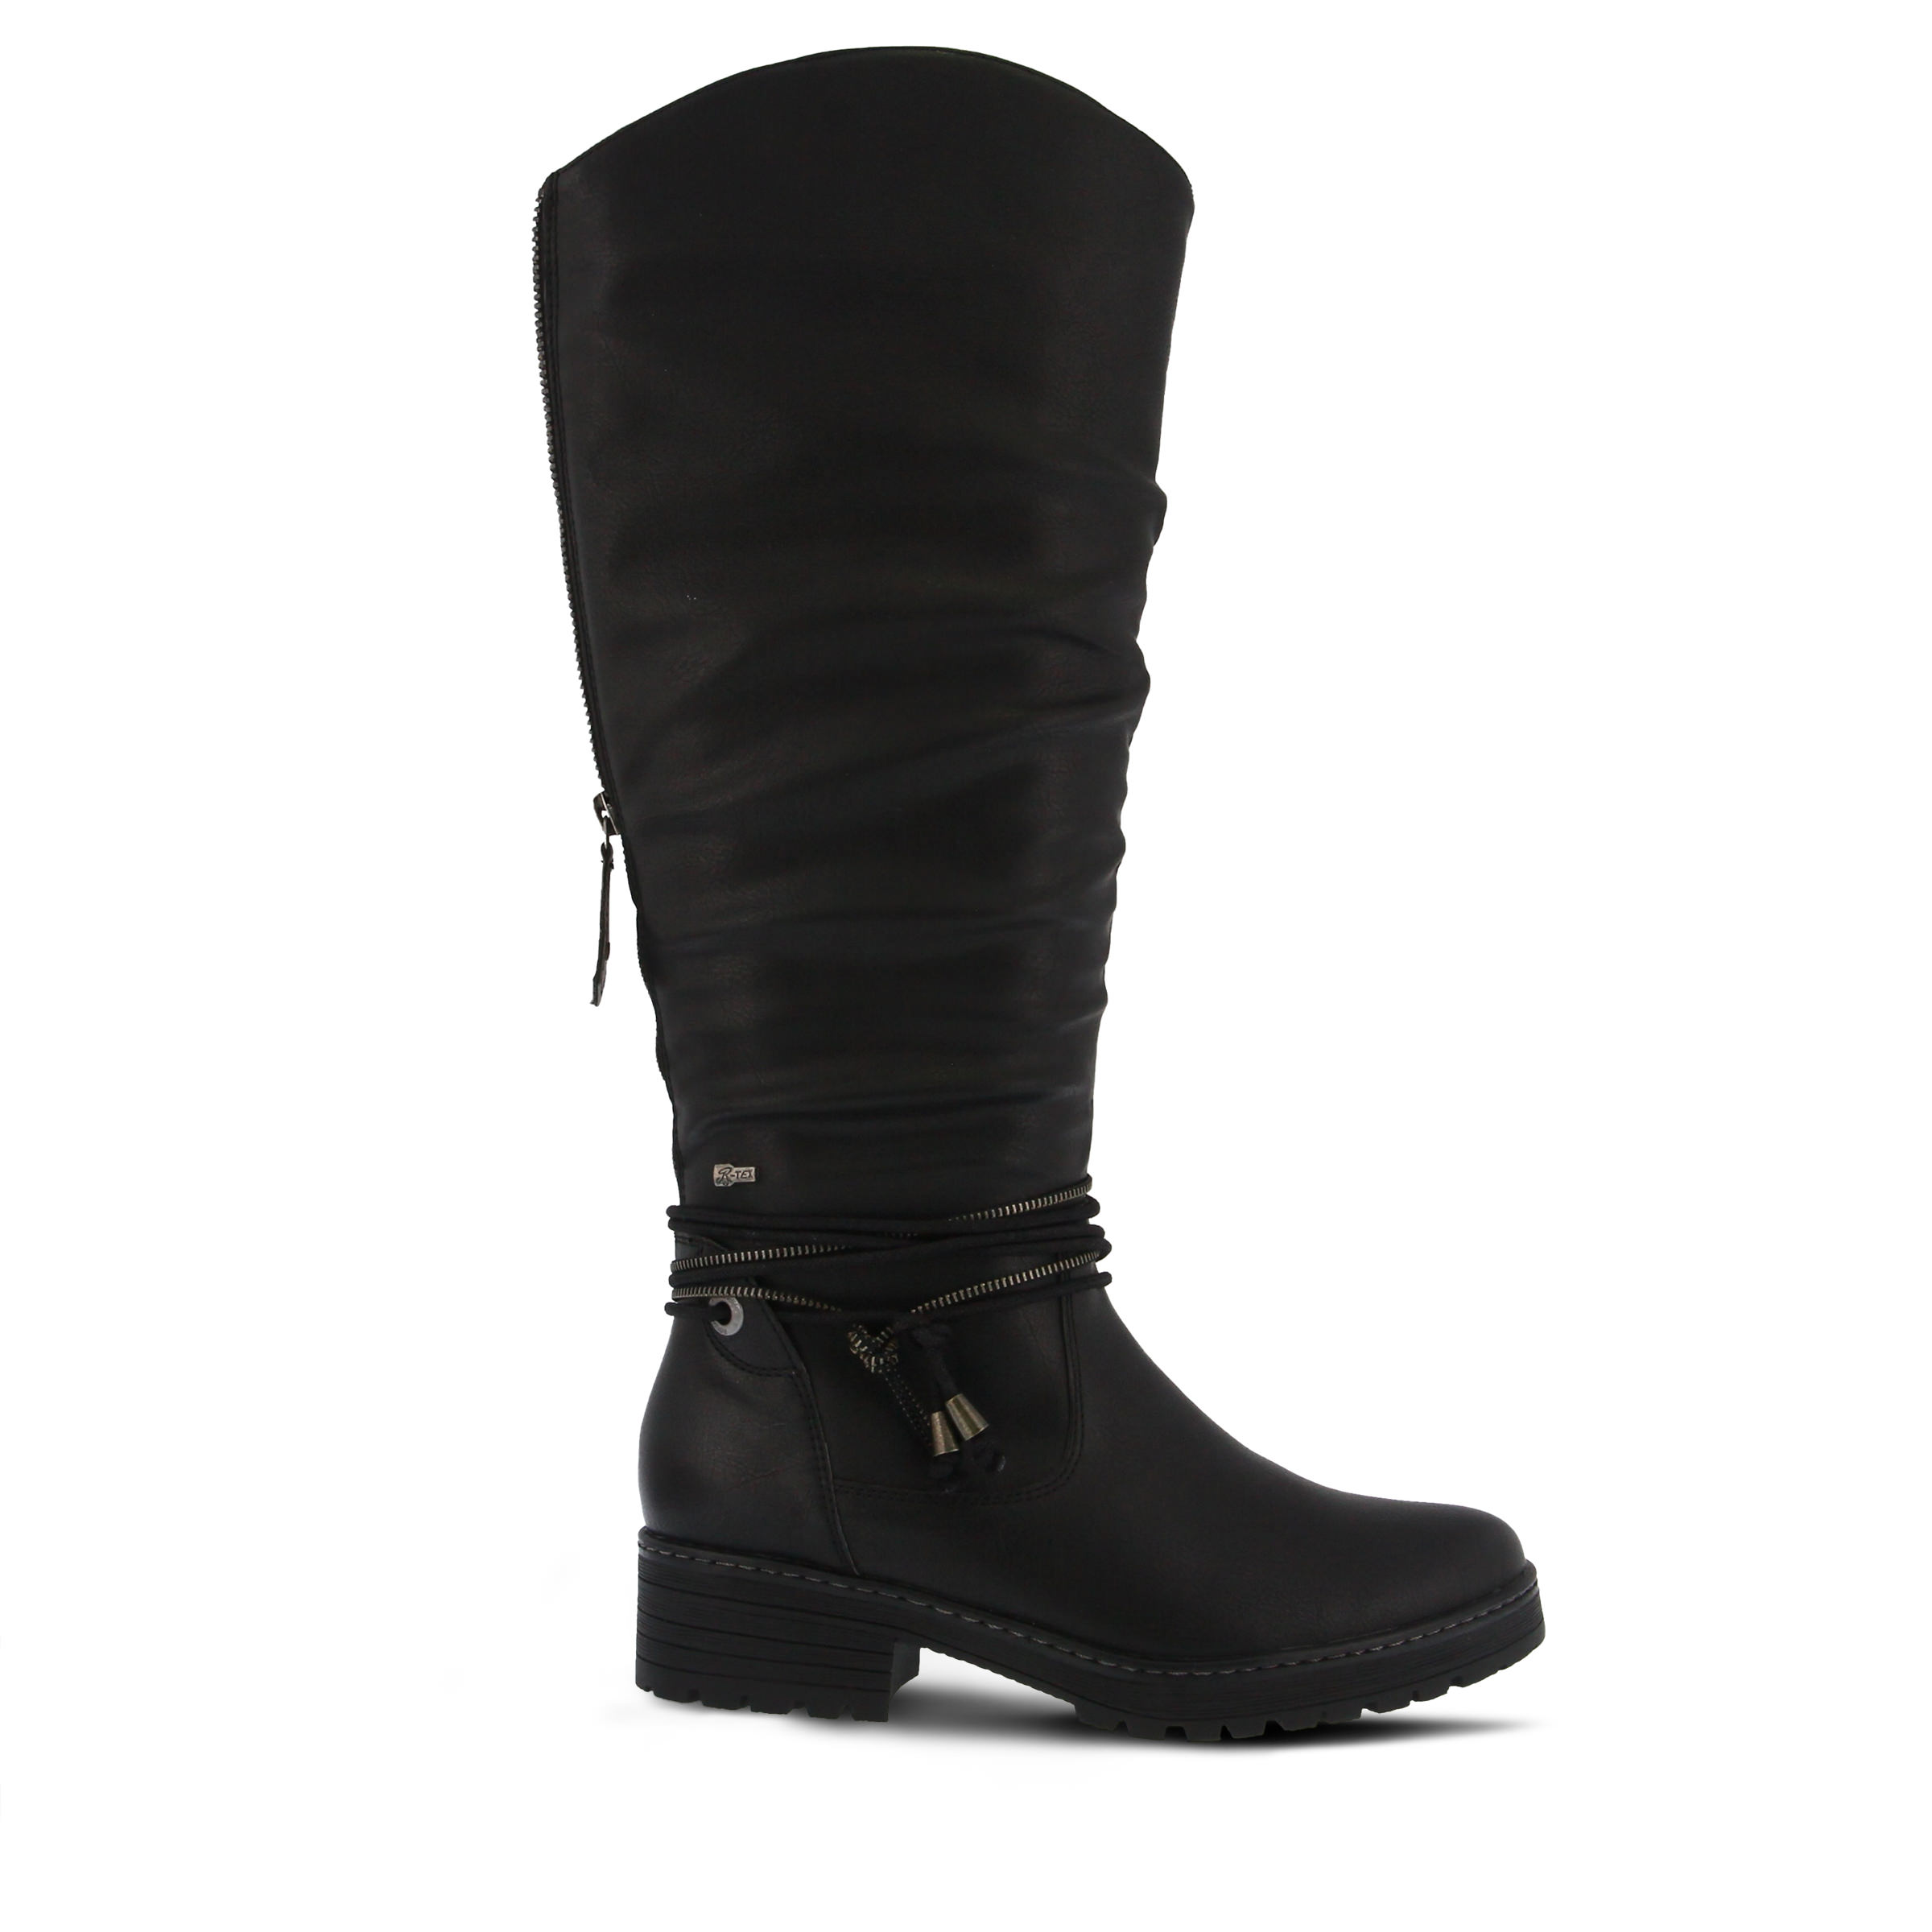 SPRING STEP Vanquish Women's Boots (Black Faux Leather)